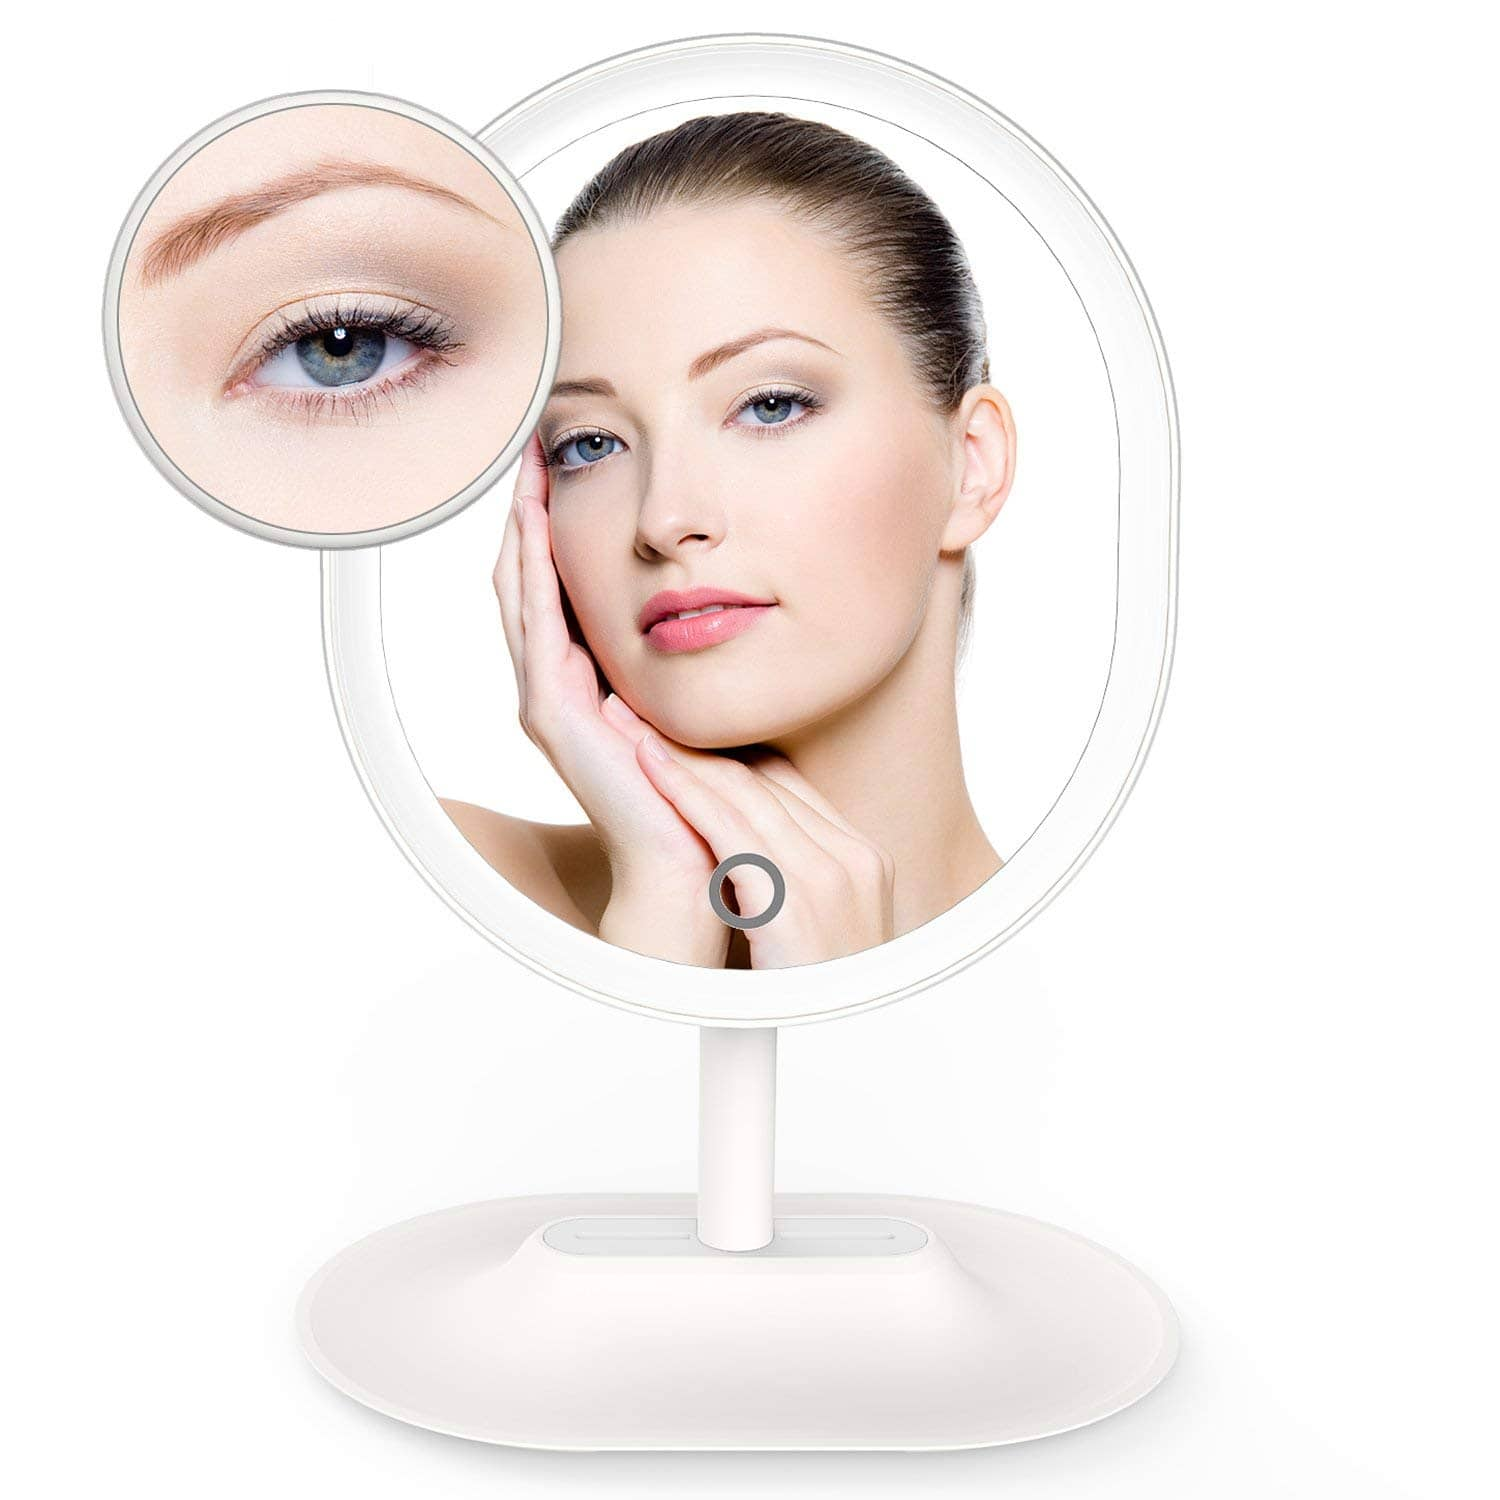 70% Off THZY Makeup Mirror LED Lighted 1X / 7 X Magnification for $8.99 (amazon)